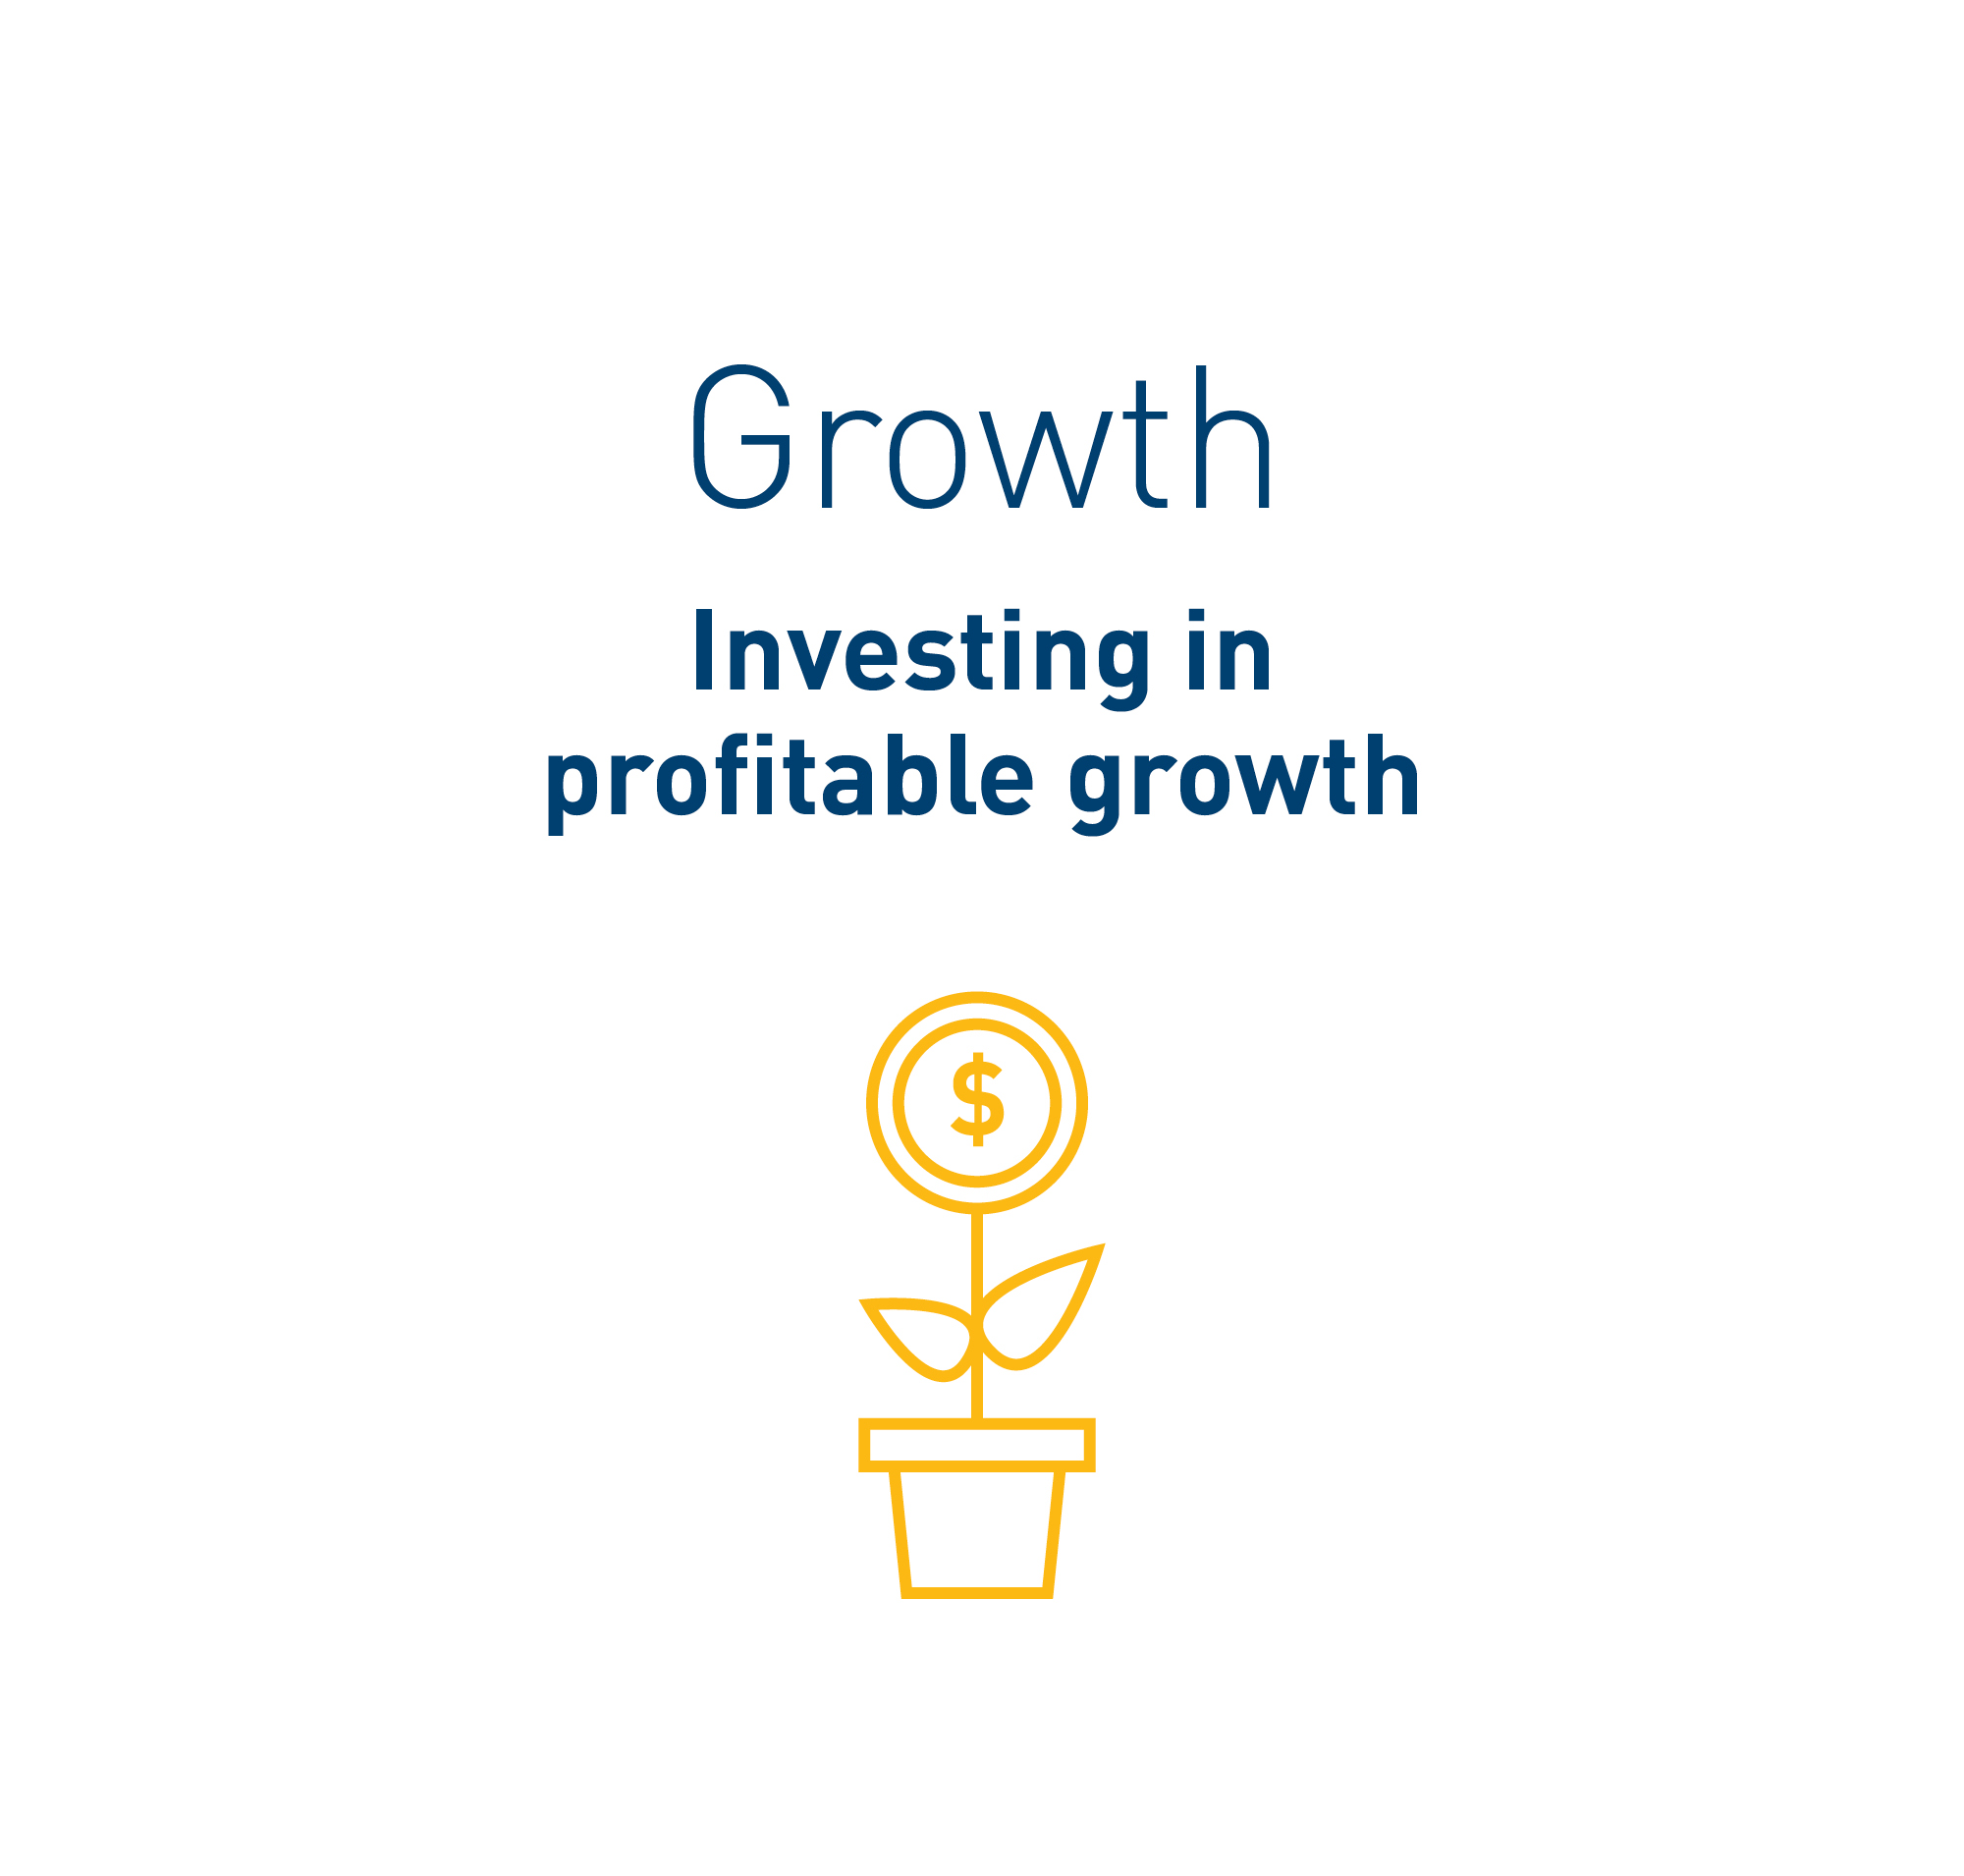 Text in image: Growth – investing in profitable growth